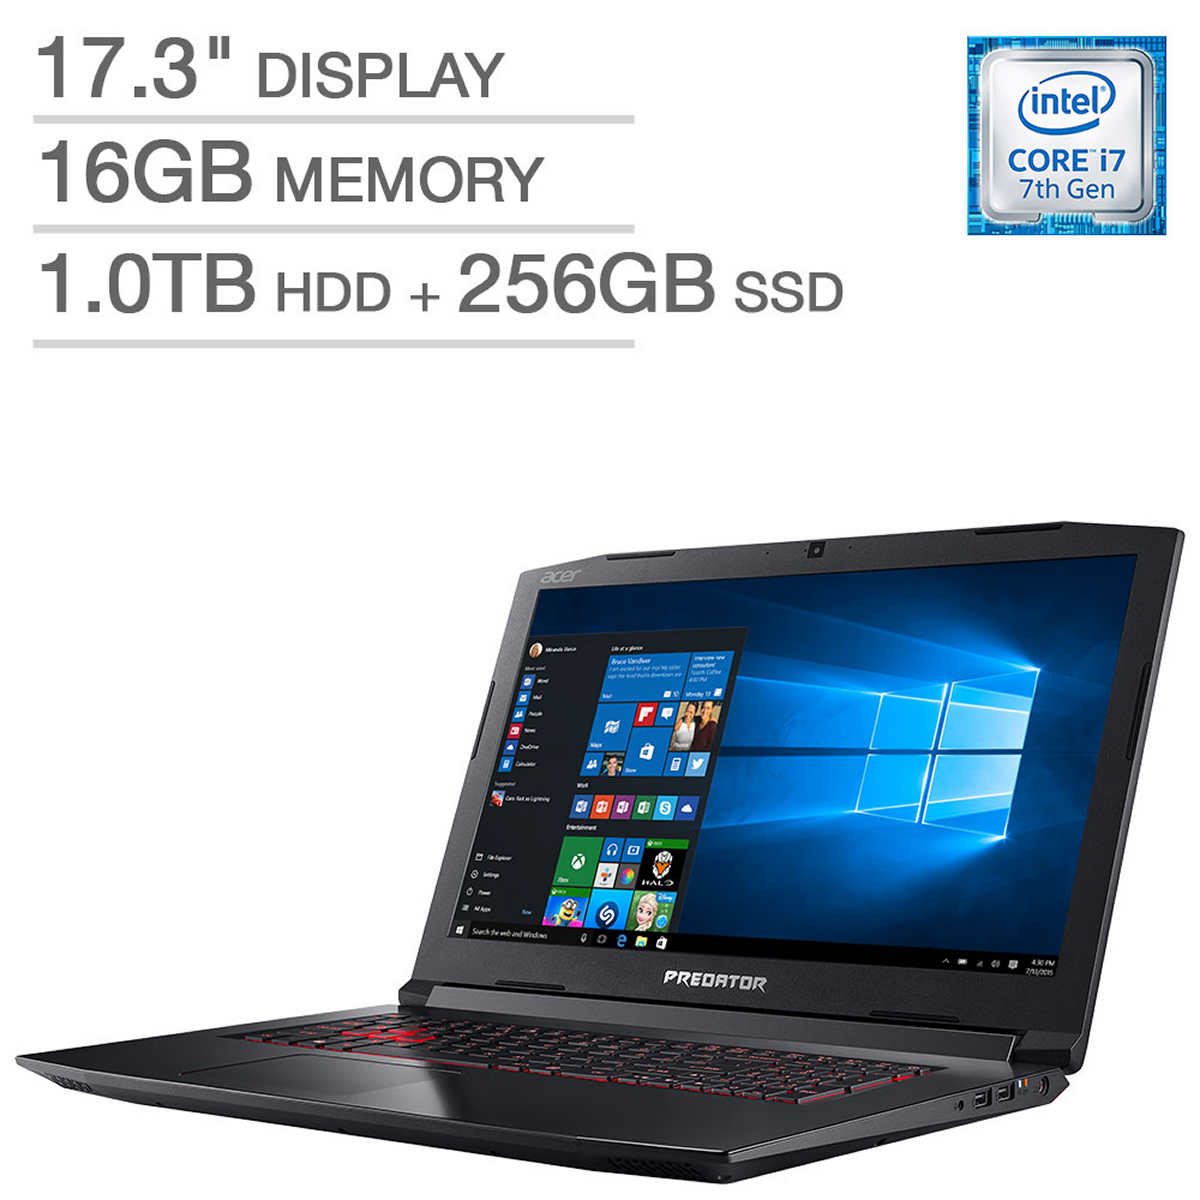 Acer Predator Helios 300 Gaming Laptop: Core i7-7700HQ, 16GB RAM, 256GB SSD + 1TB HDD, Nvidia 1060 6GB... by Acer